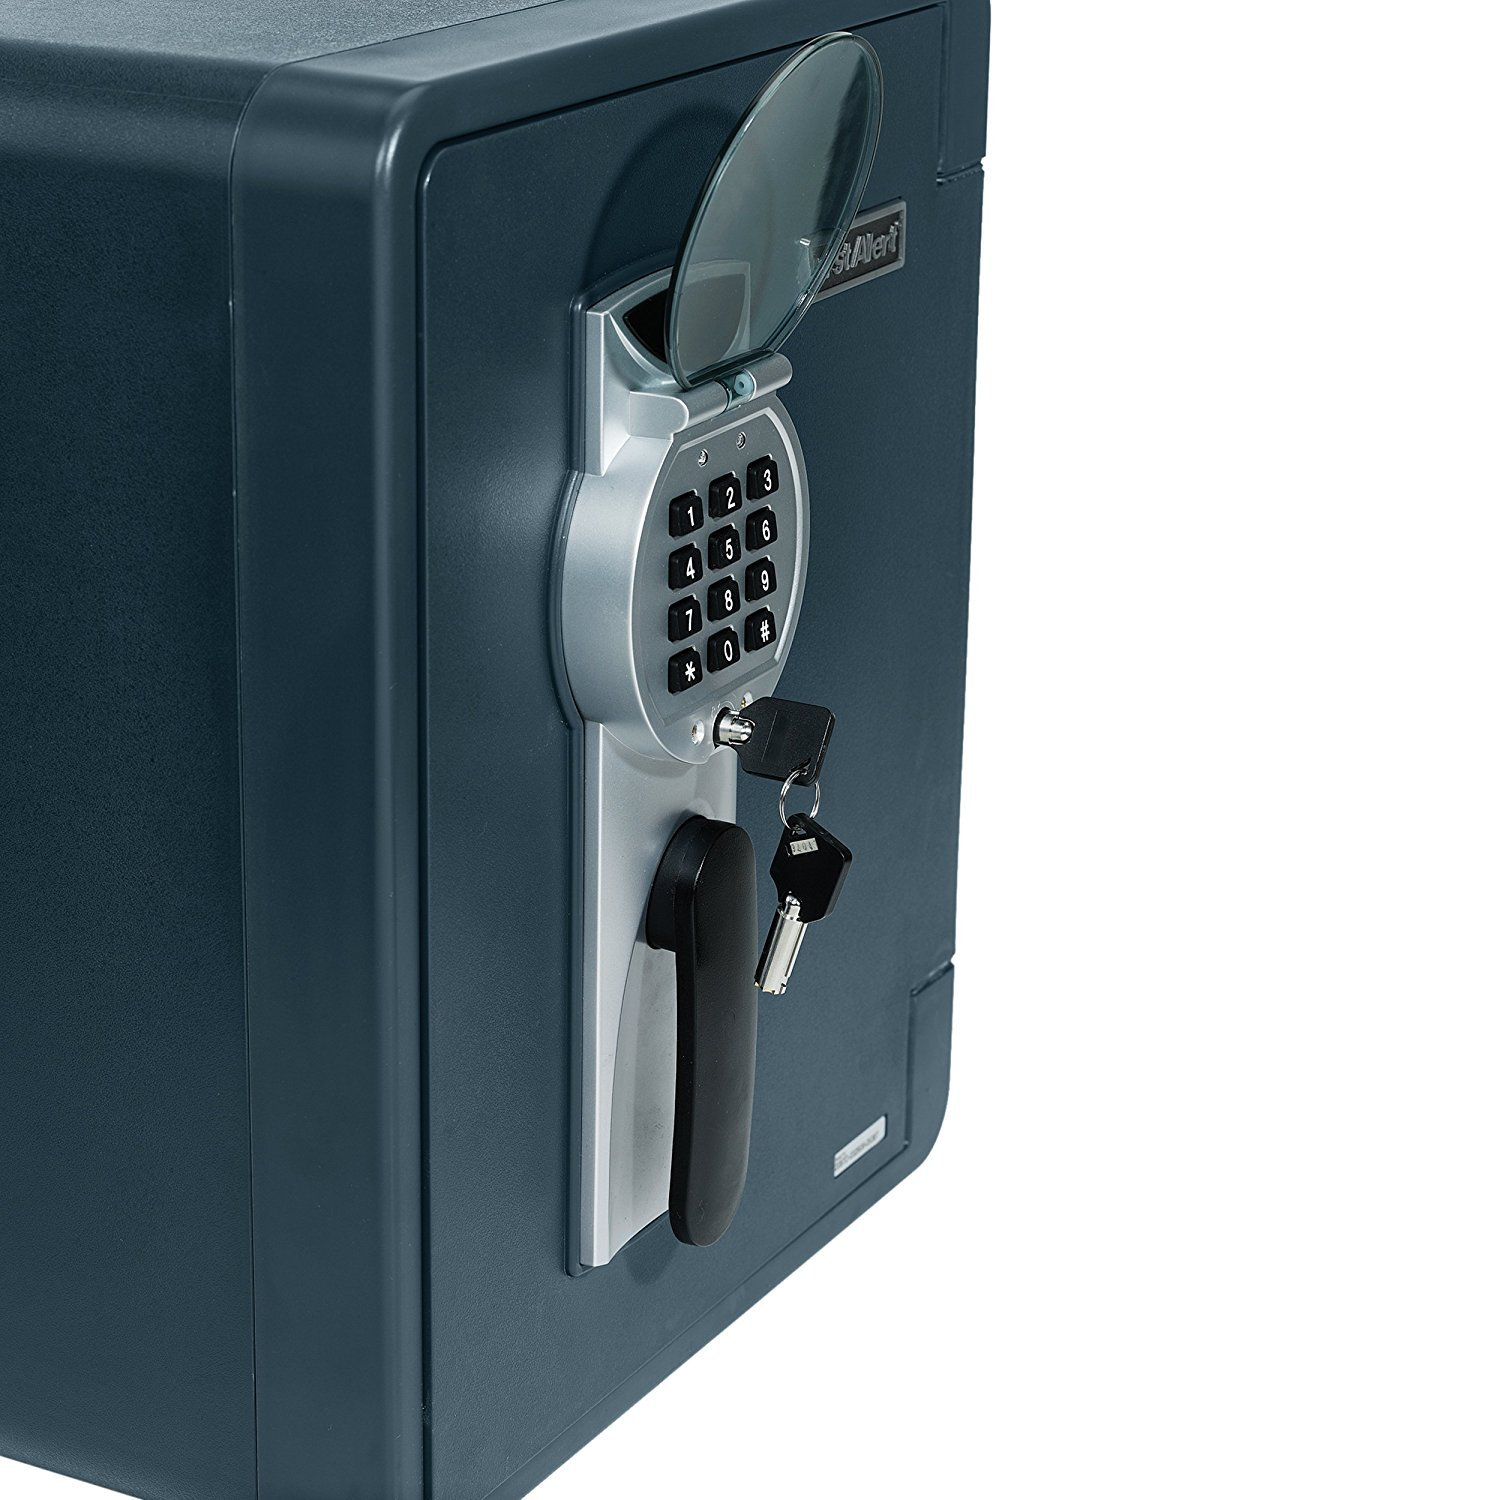 First Alert 2092DF Waterproof and Fire-Resistant Digital Safe, 1.31 Cubic Feet by First Alert (Image #3)